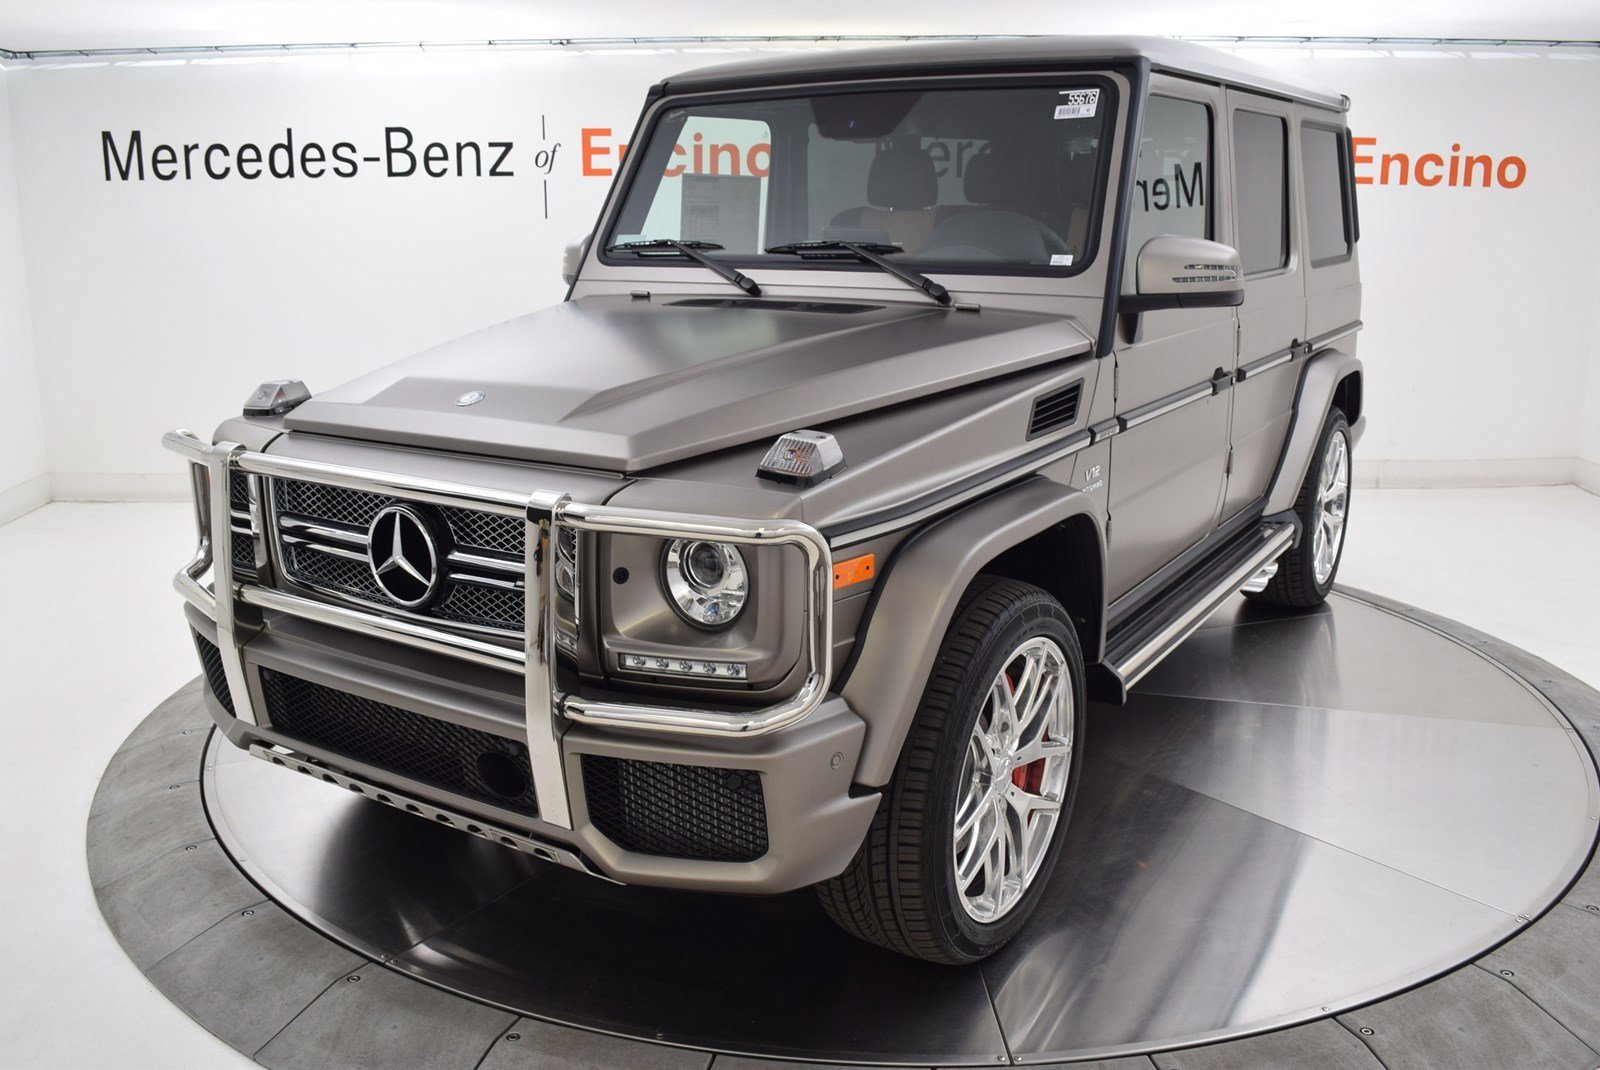 new 2017 mercedes benz g class g 65 amg suv suv in encino 55676 mercedes benz of encino. Black Bedroom Furniture Sets. Home Design Ideas